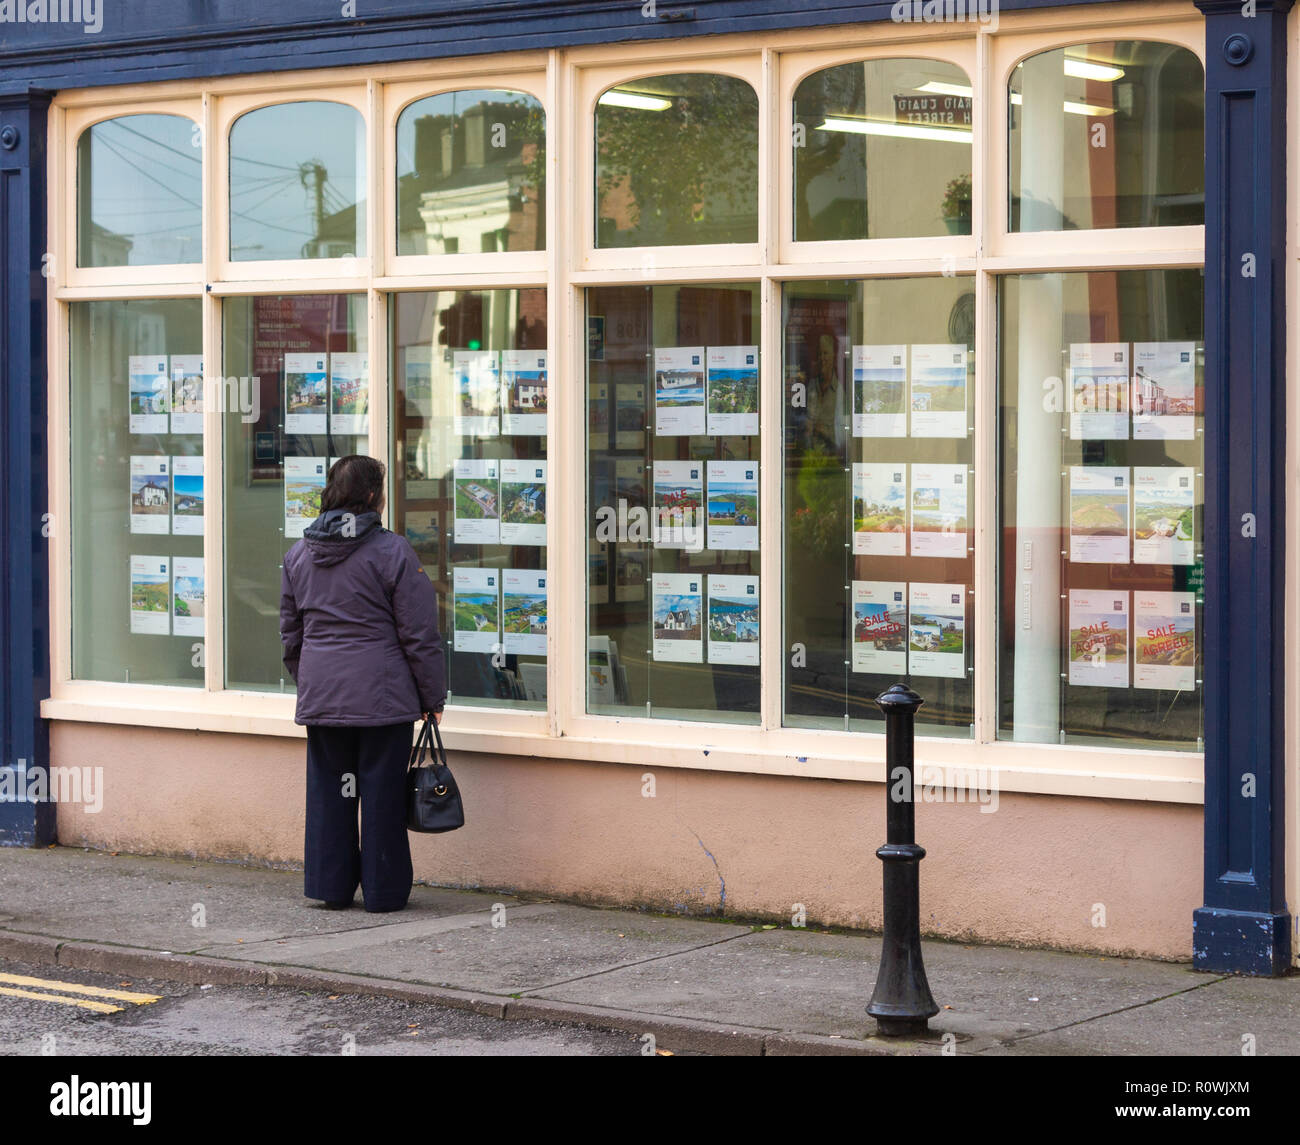 female-house-buyer-looking-at-estate-agents-property-for-sale-window-ireland-R0WJXM.jpg